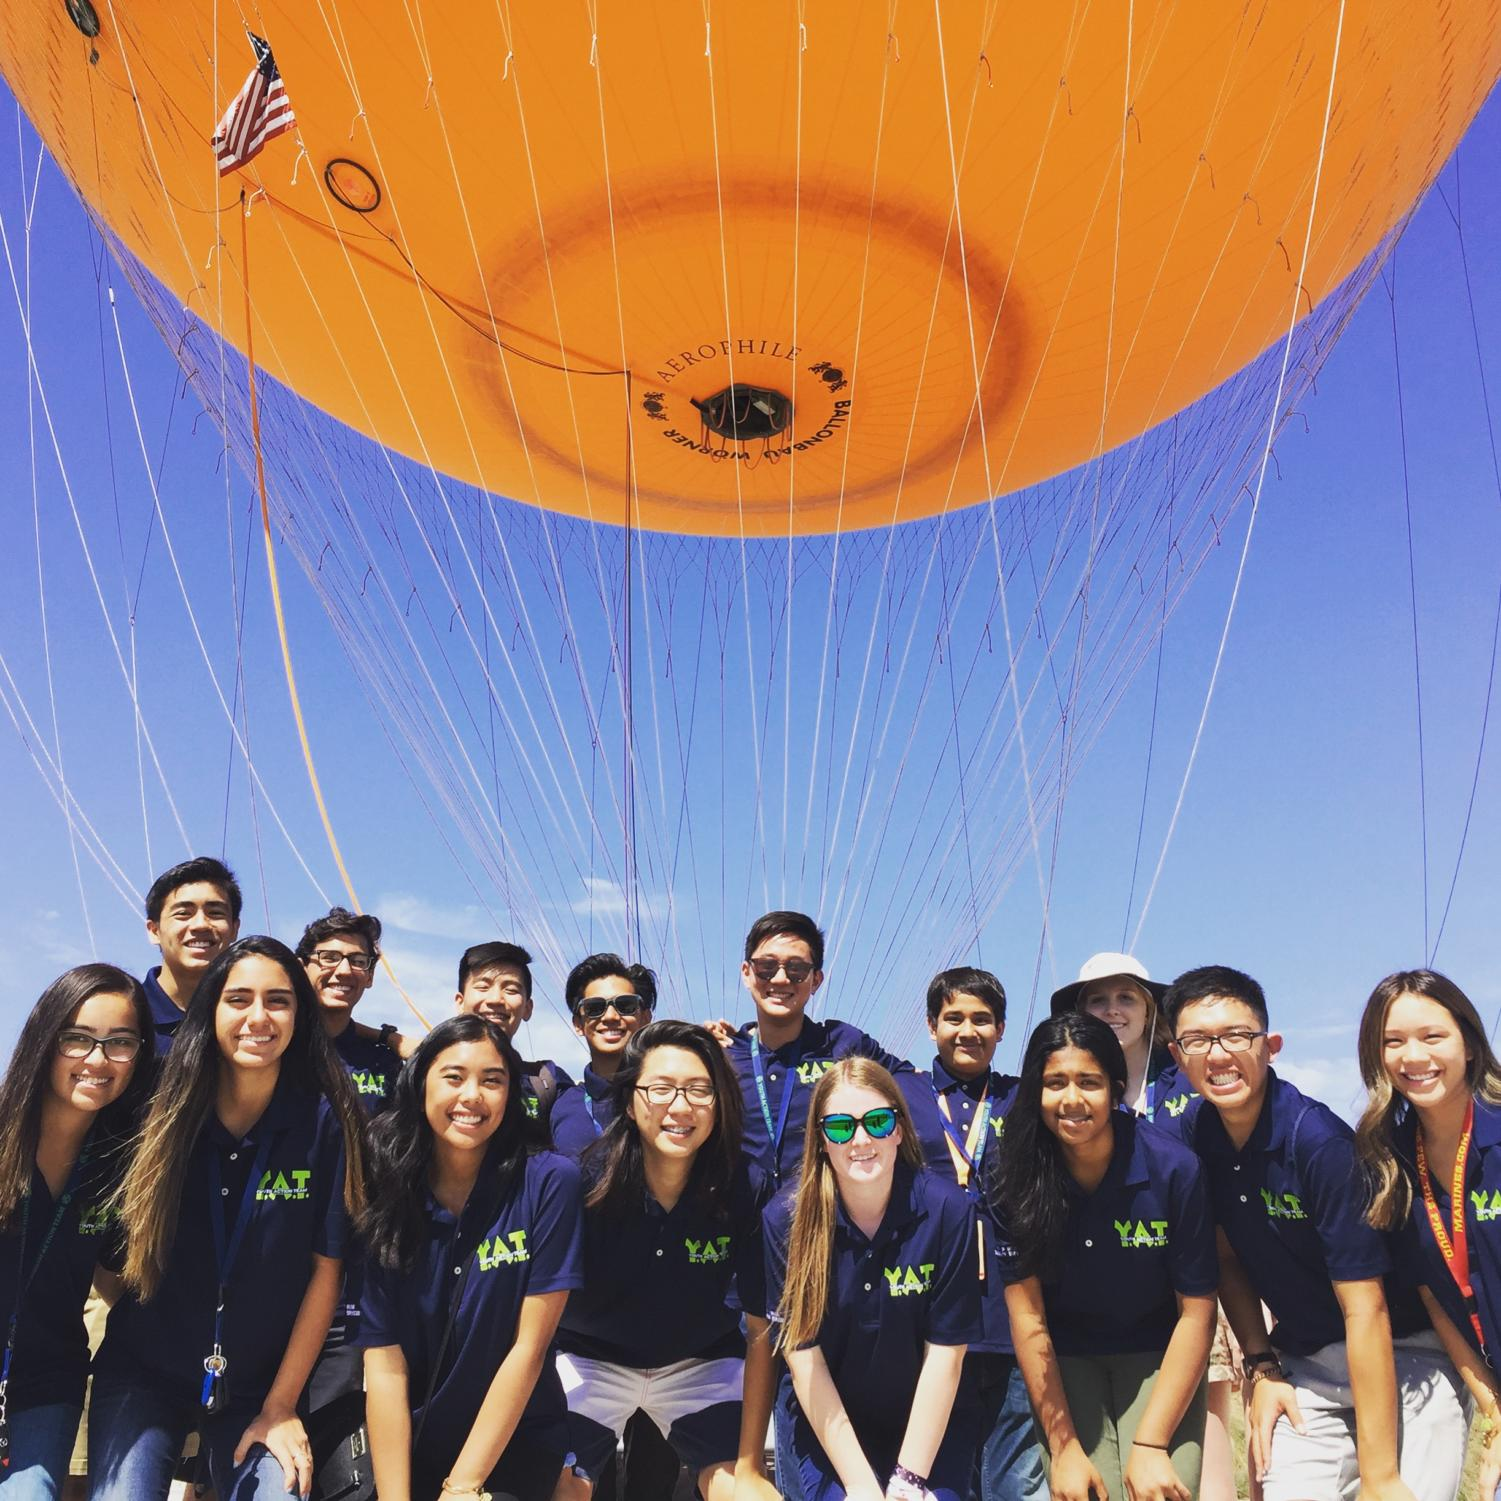 YAT officers in Irvine work hard to organize many different events available to students throughout the school year.